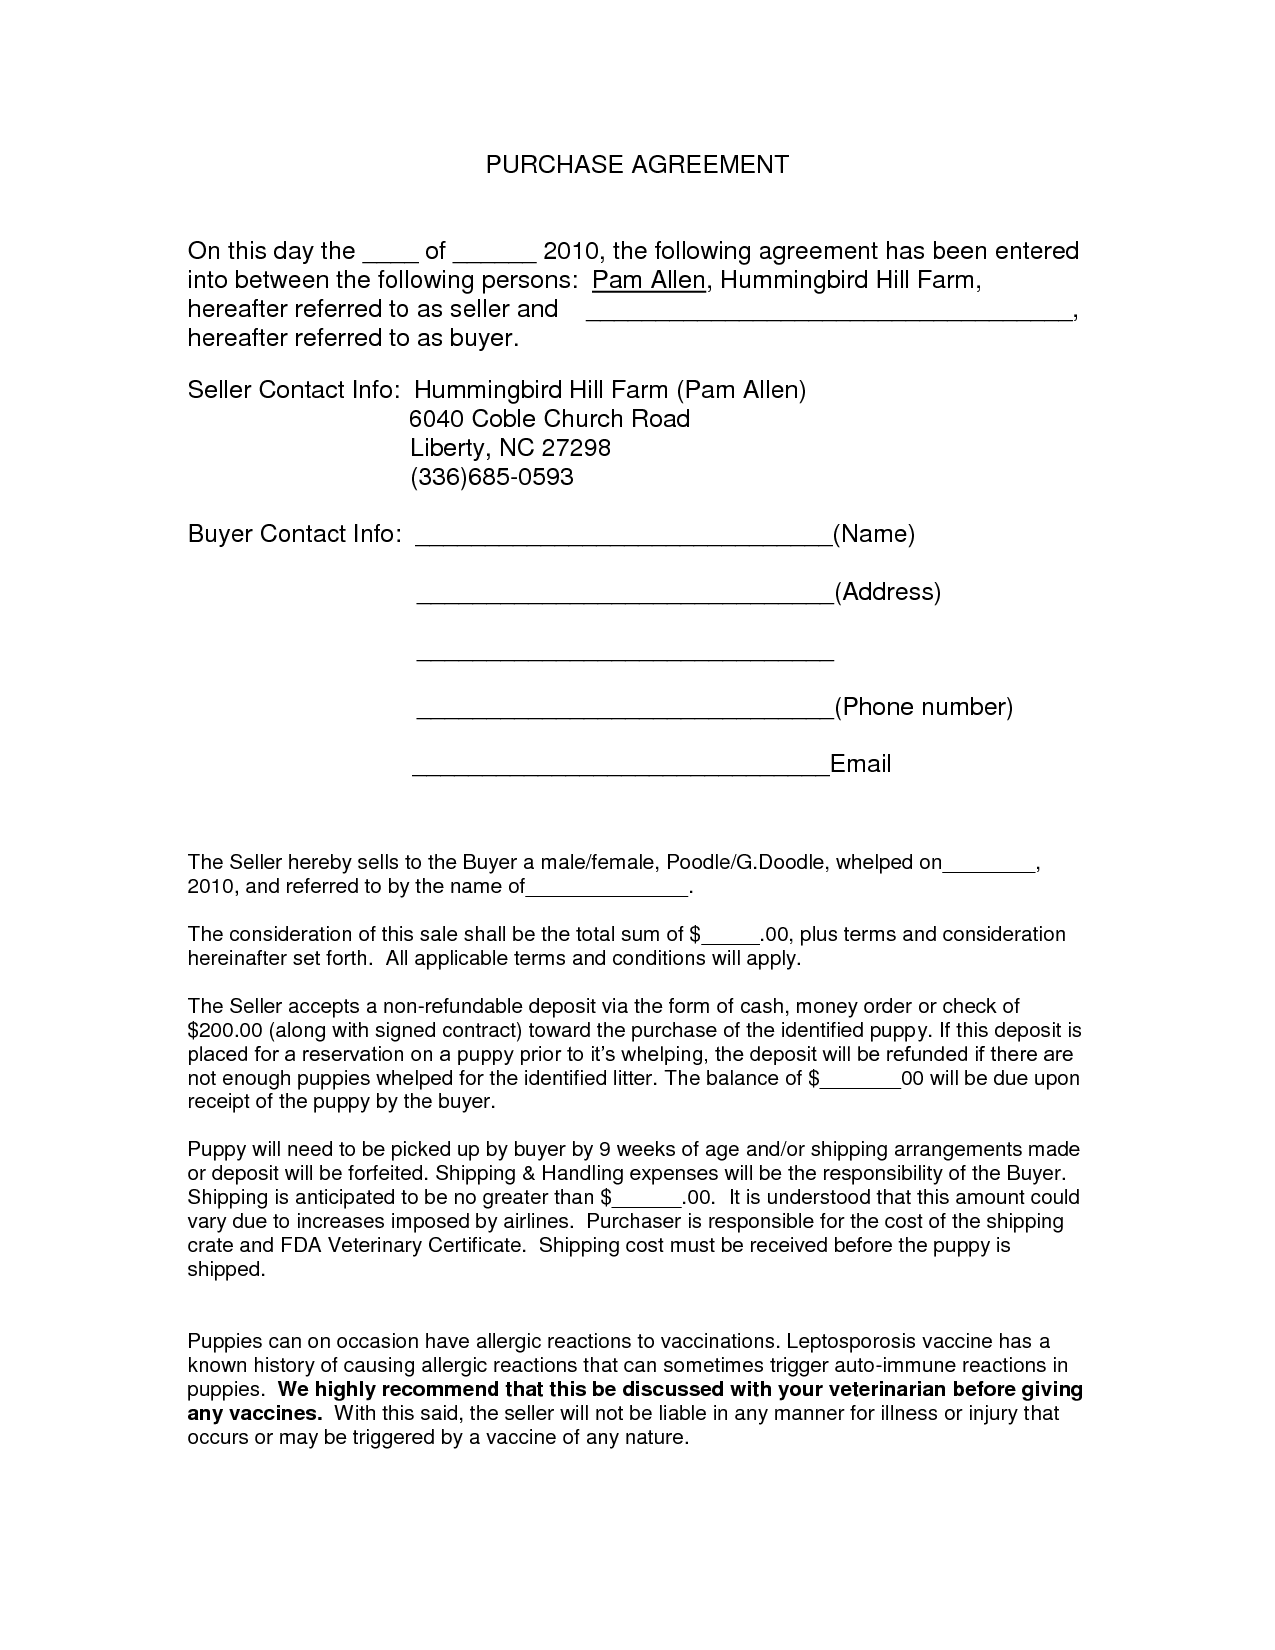 Agreement Form Doc | Auto Purchase Agreement Form Doc By Nyy13910 Purchase Contract